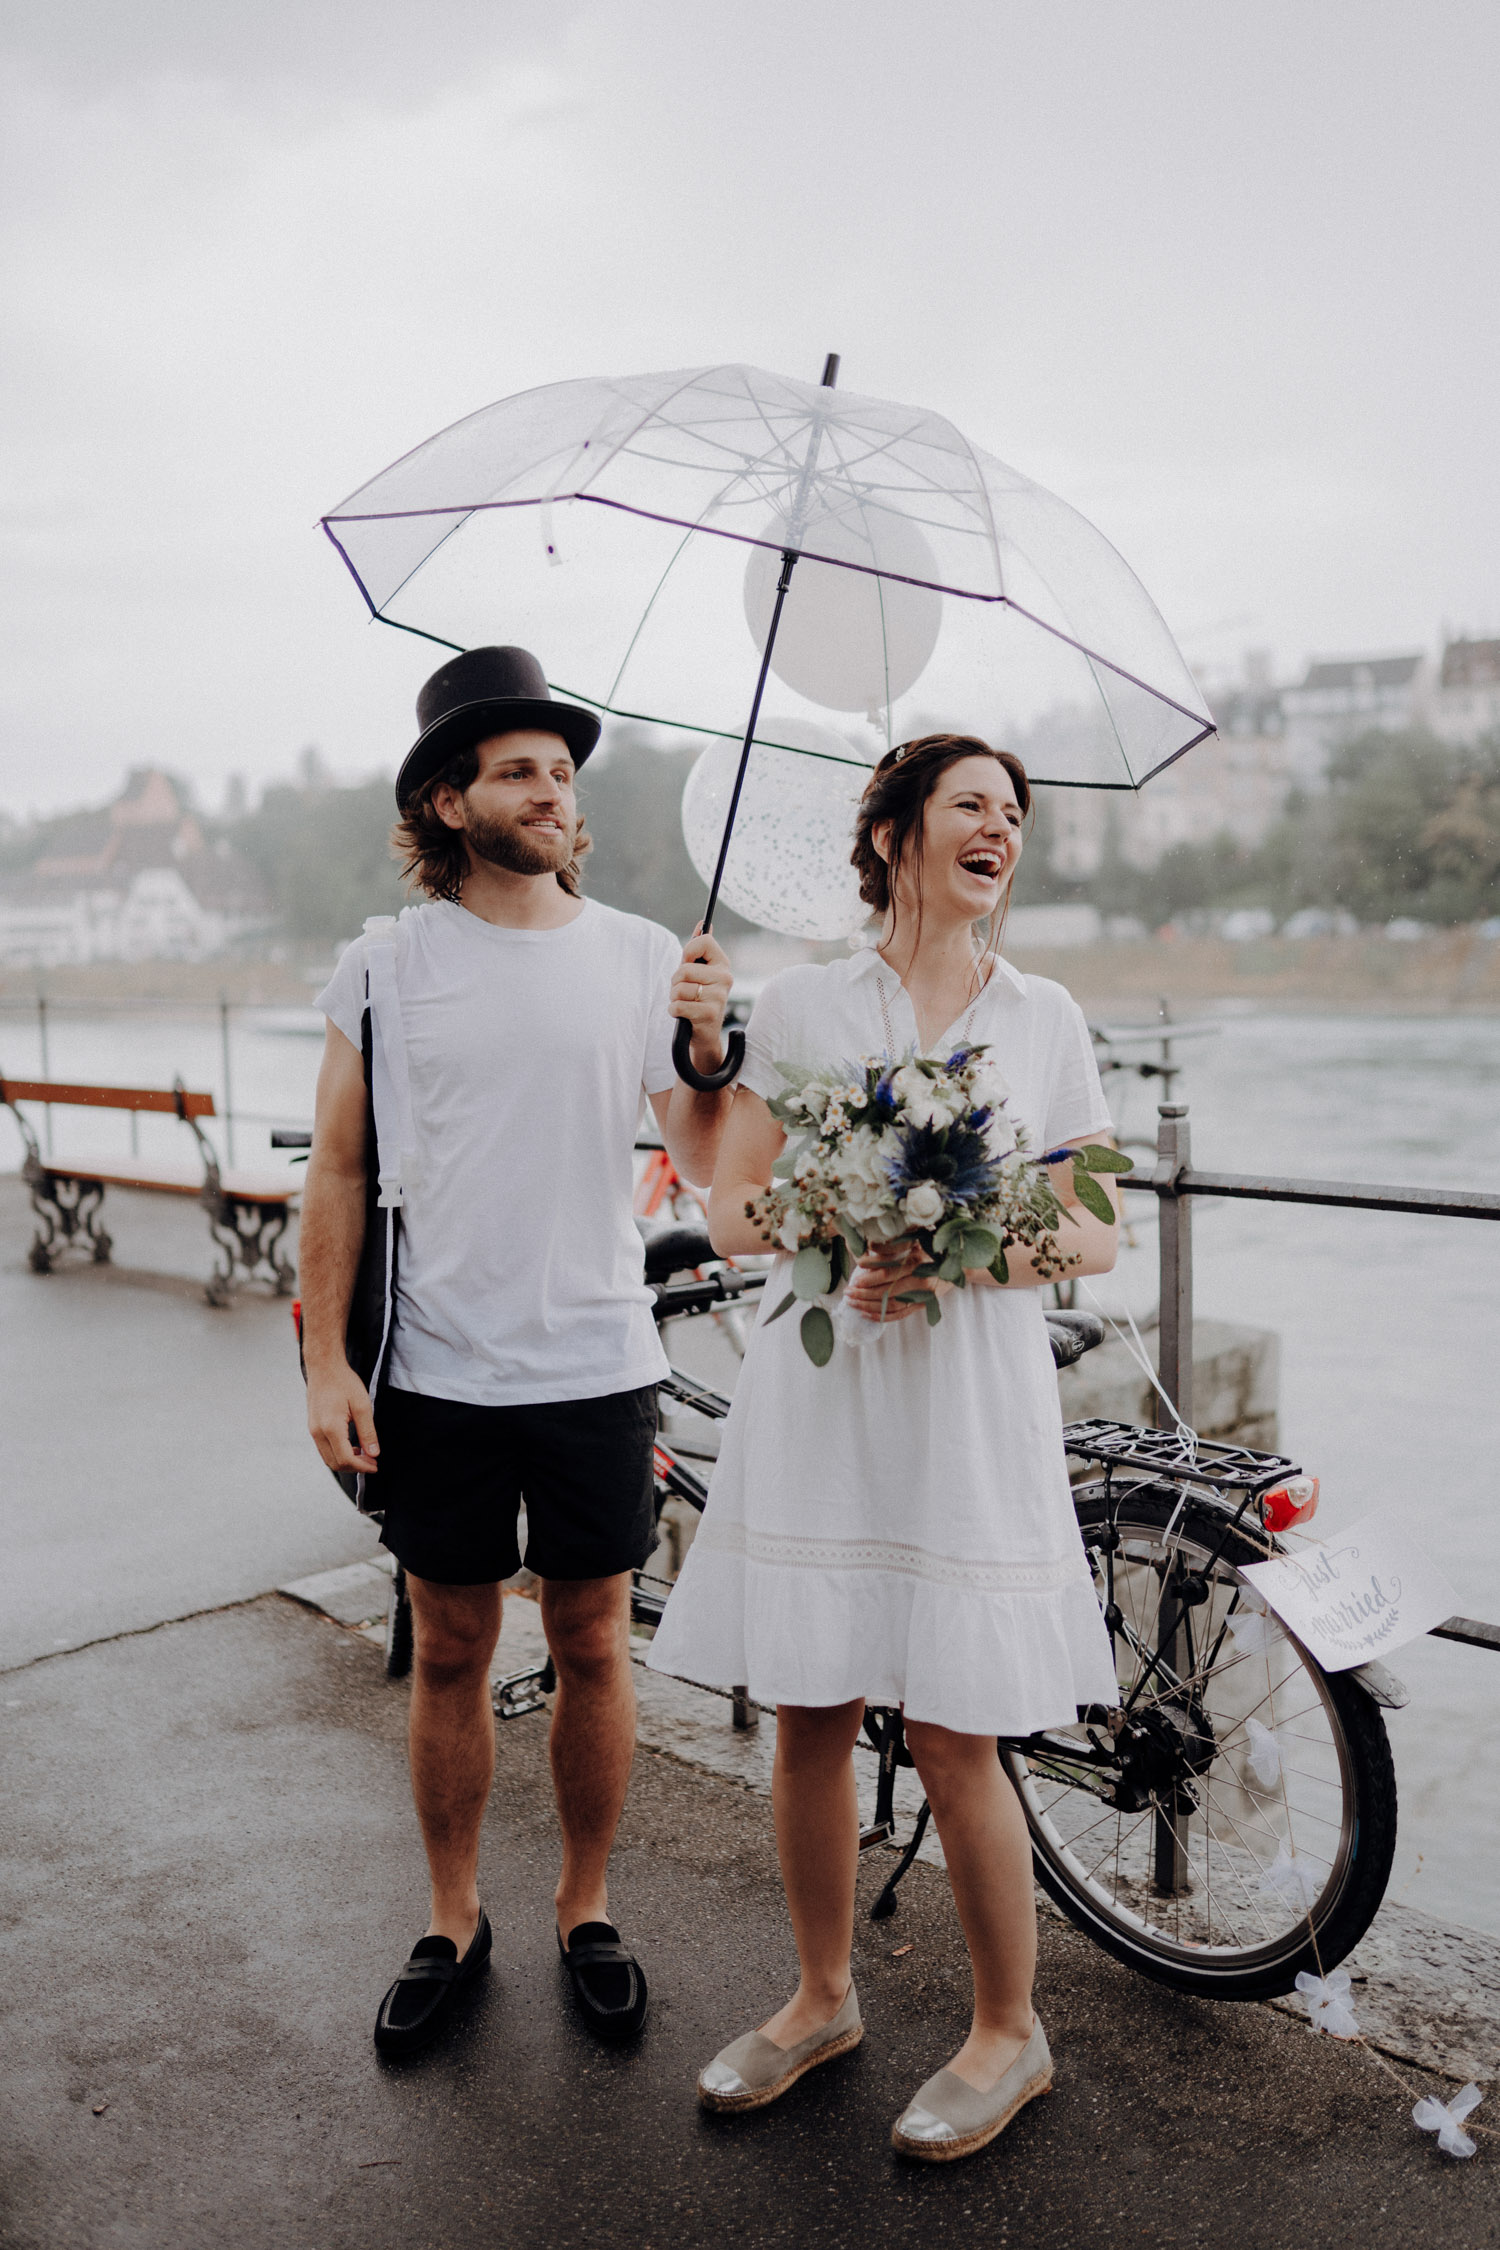 Wedding photographer switzerland basel natural unposed civil wedding old town Basel Minster couple shoot bohemian style documentary rainy wedding